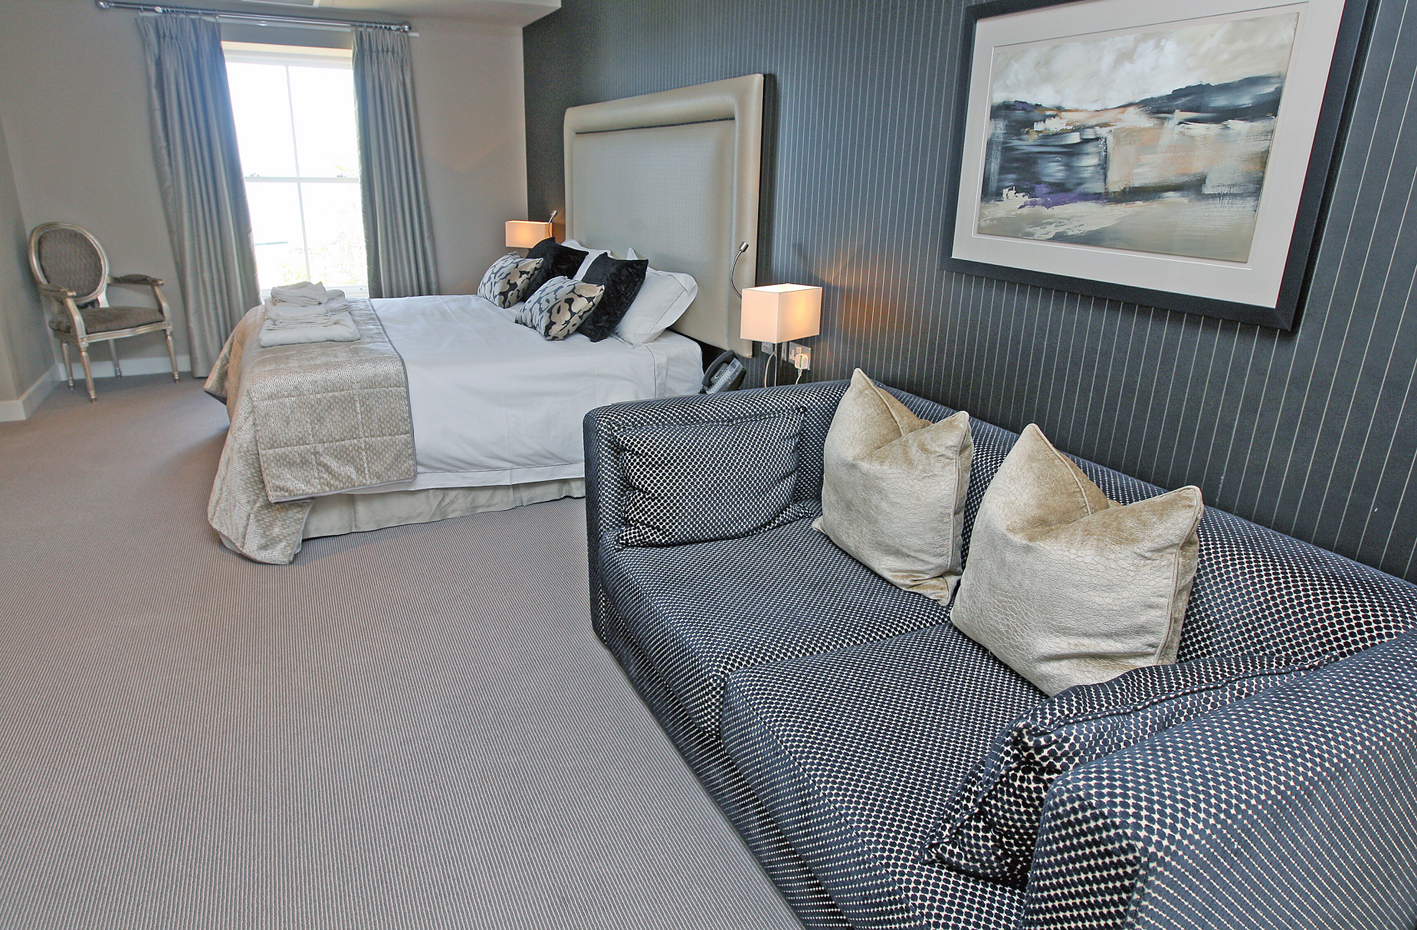 LlawnrocRm11h 16/06/2016 Room 11, a generous dual aspect suite room with sea views and a large bathroom with a separate shower and bath. This suite can be made as a double or twin room. This suite can be made as a double or twin room.